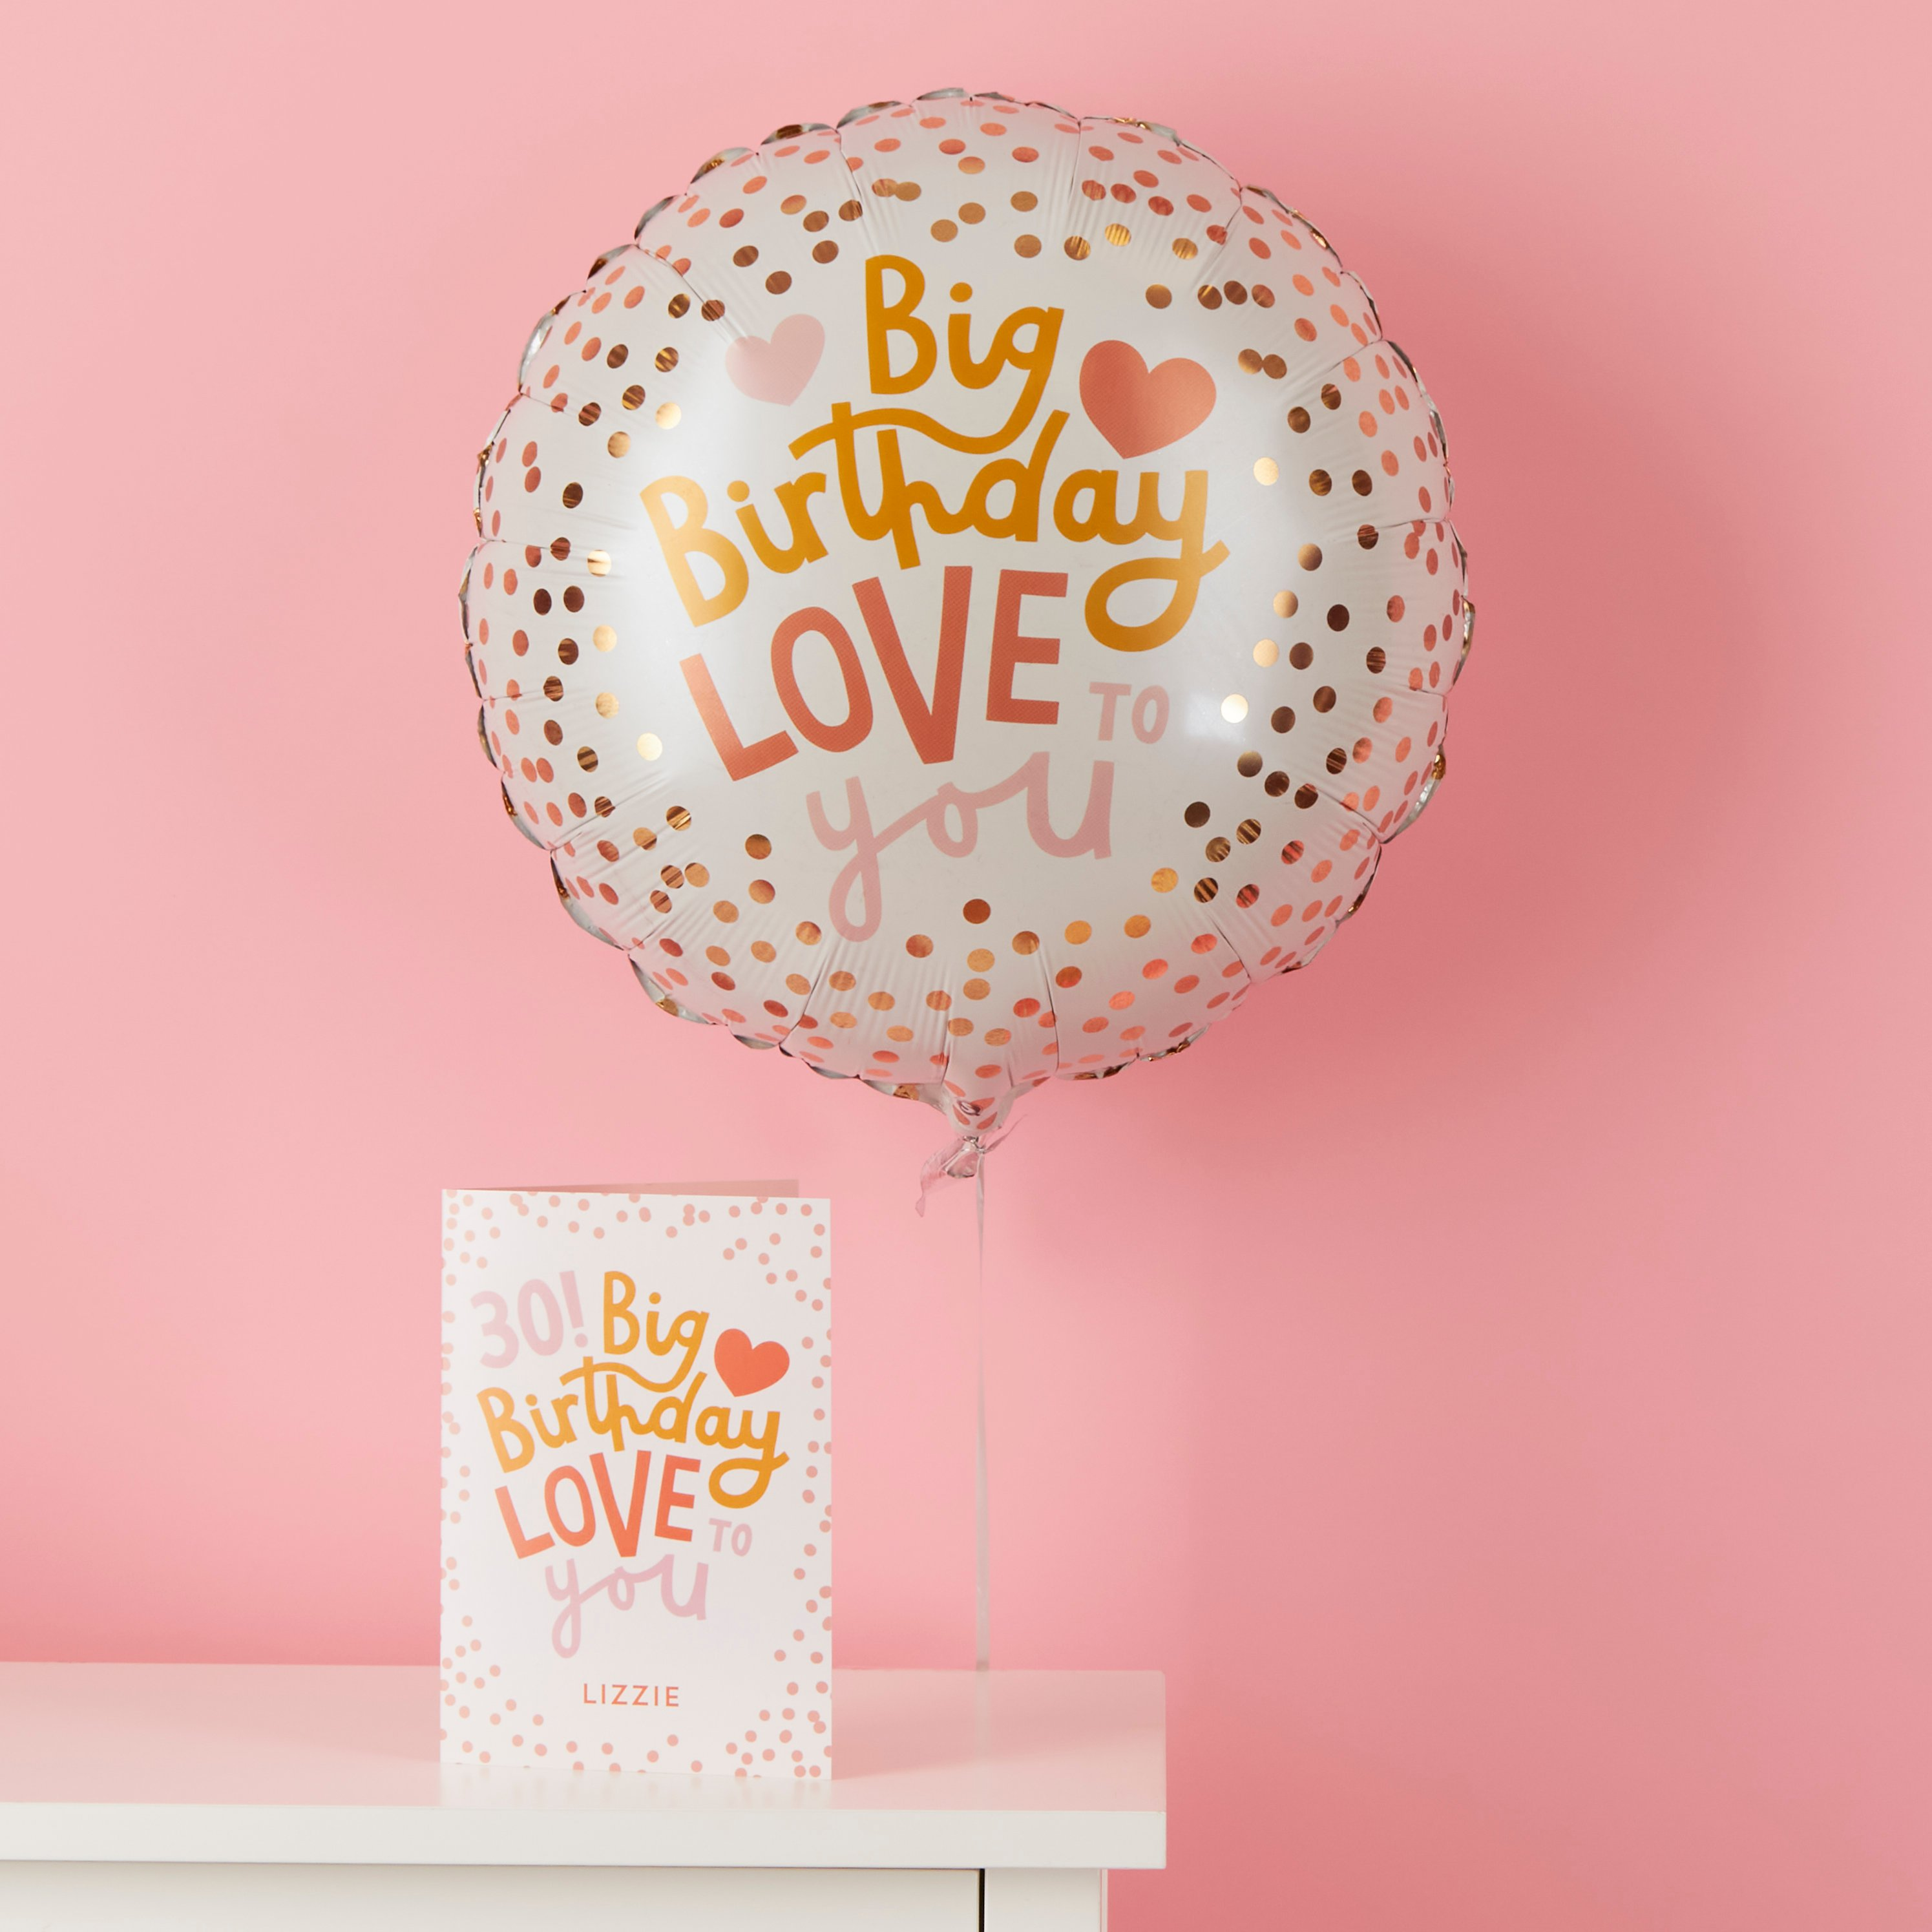 Big Birthday Love To You Gift Set By Moonpig - Delivery Available